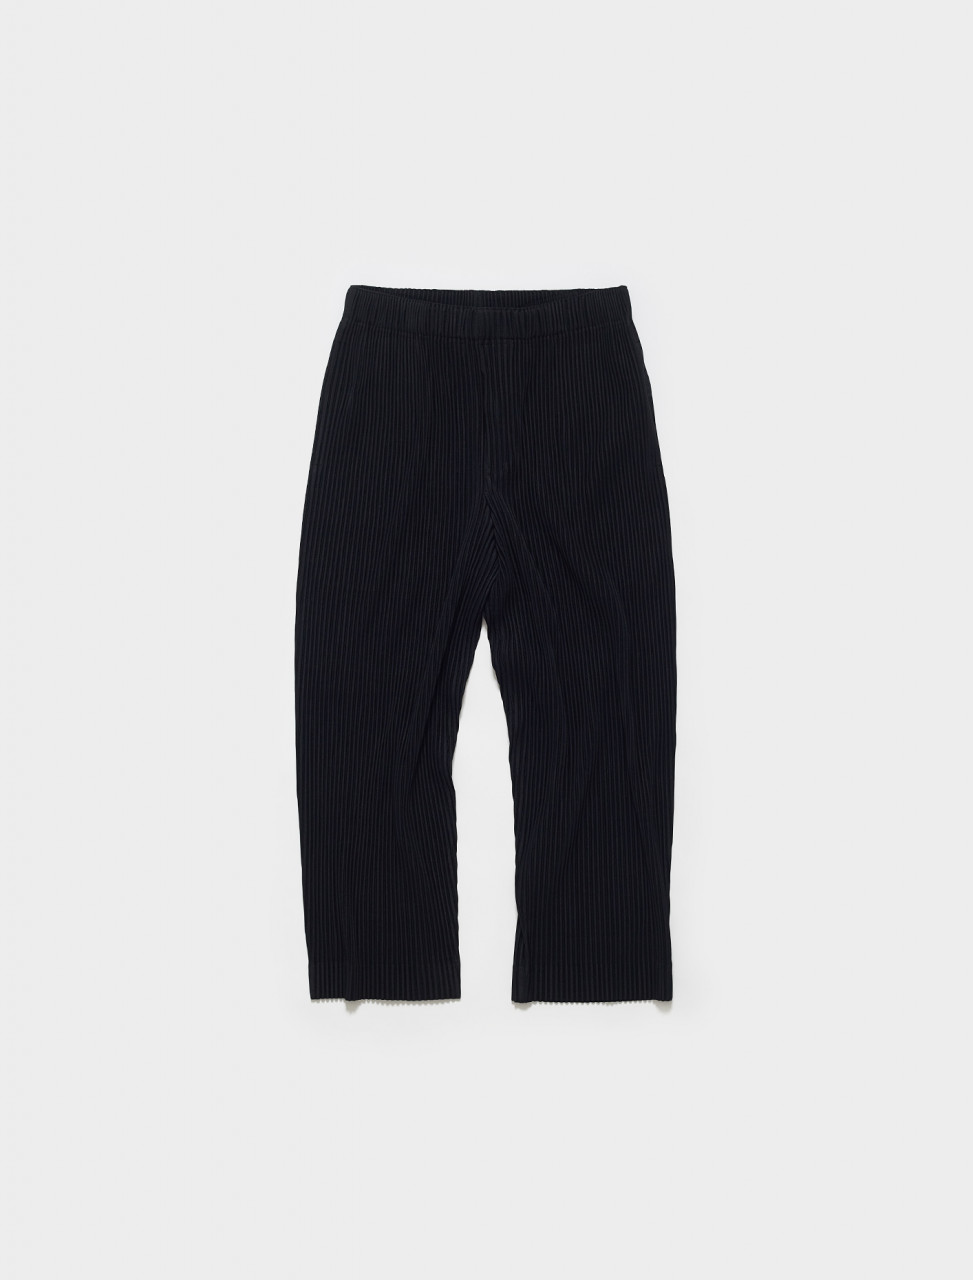 HP16JF149-15 HOMME PLISSE ISSEY MIYAKE PLEATED TROUSERS IN BLACK